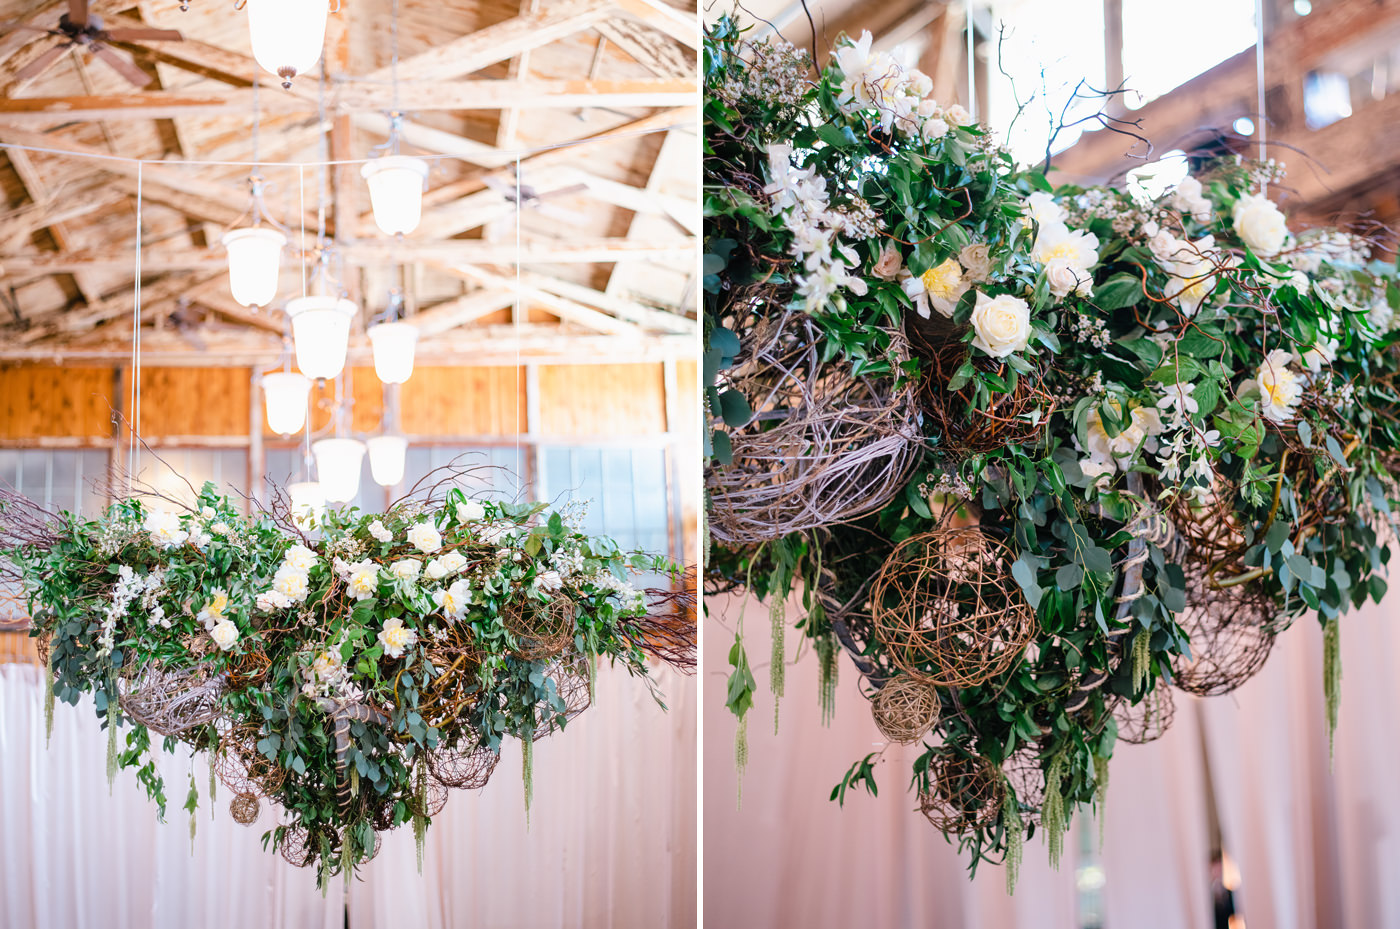 028-hanging-greenery-chandeliers-with-white-florals.jpg